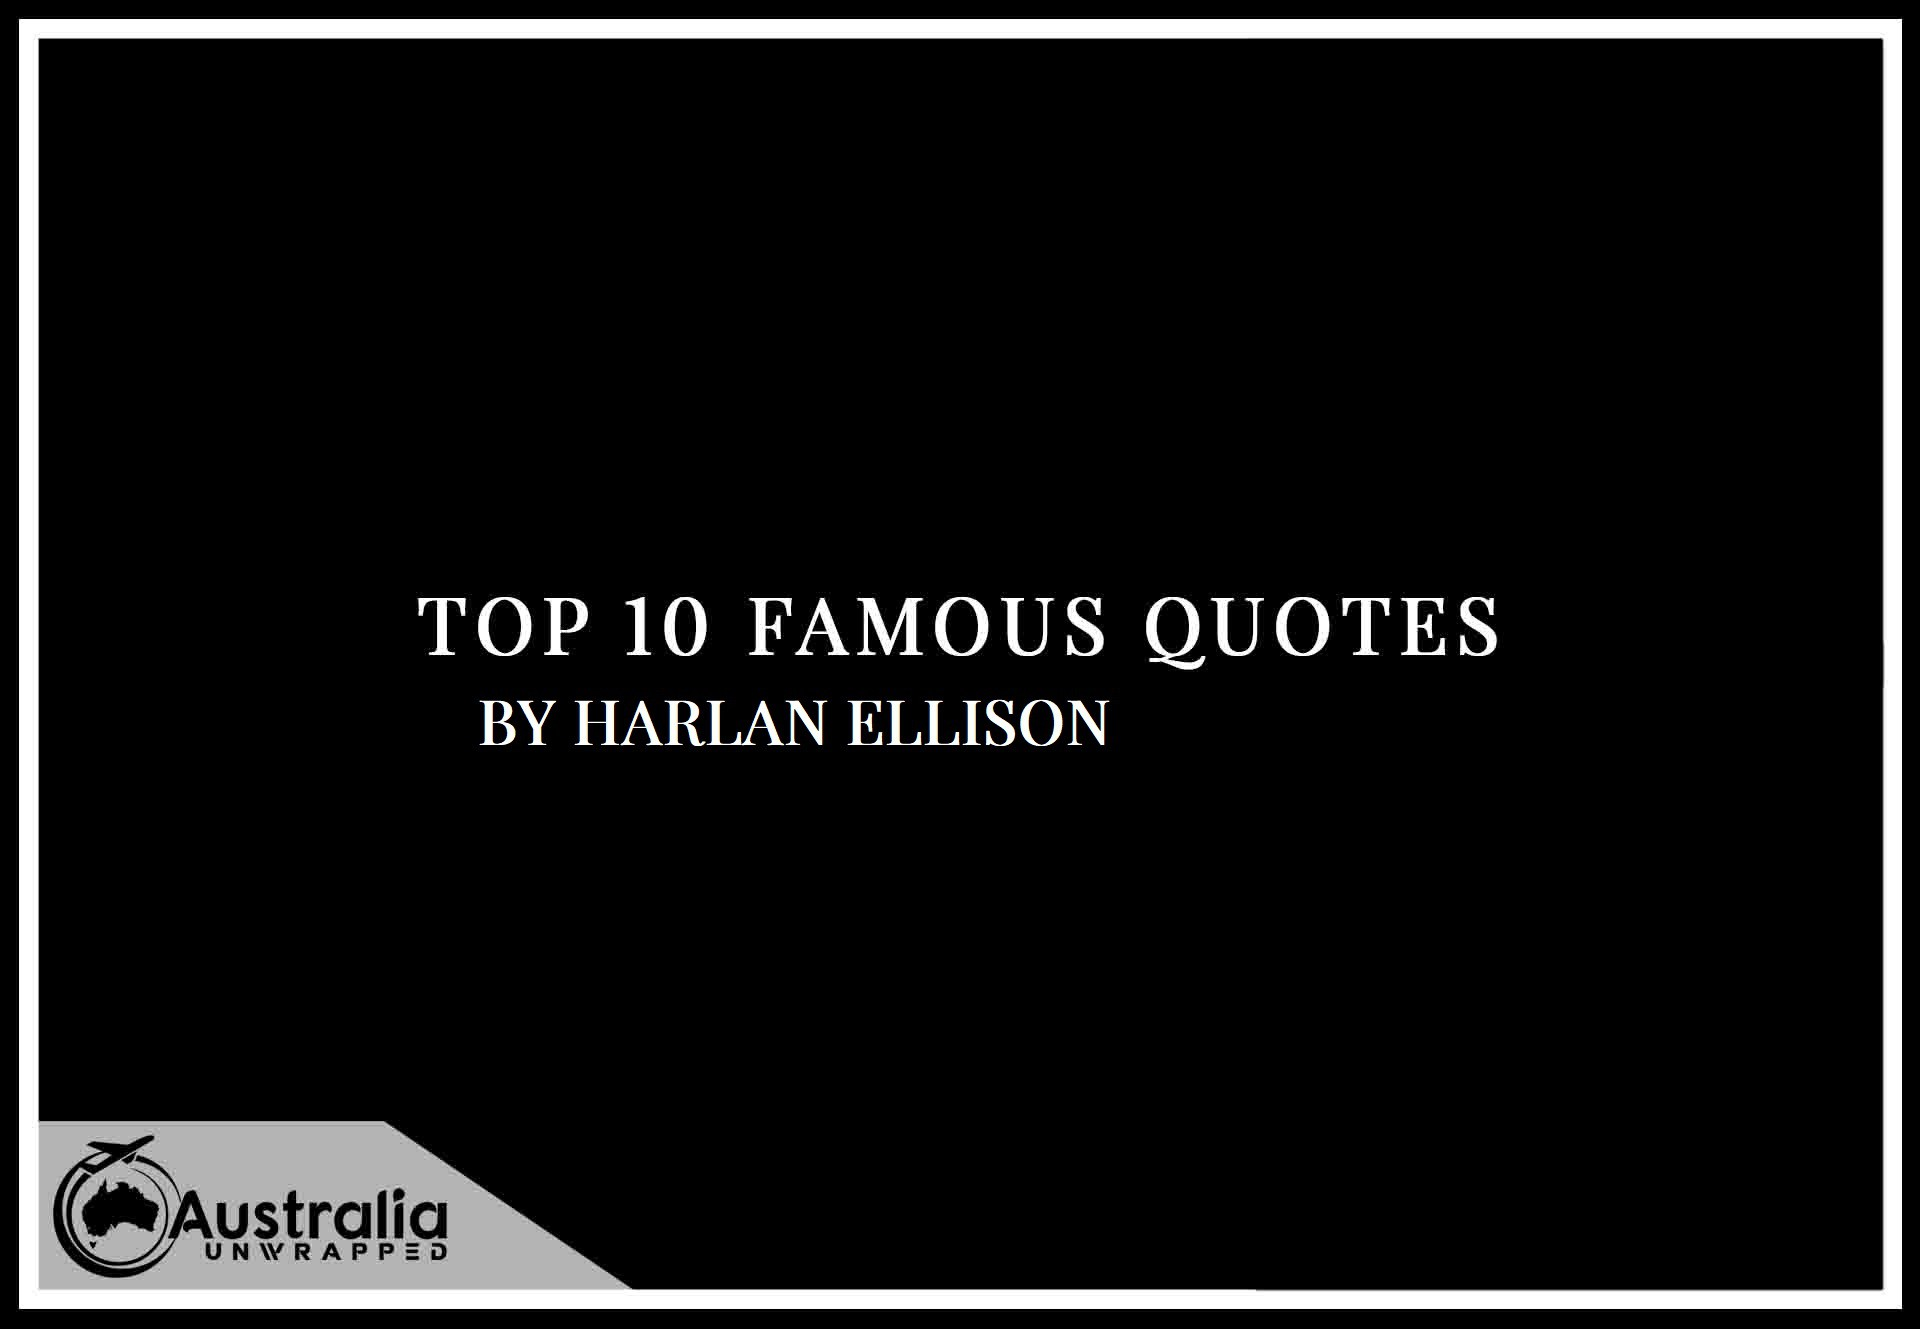 Top 10 Famous Quotes by Author Harlan Ellison